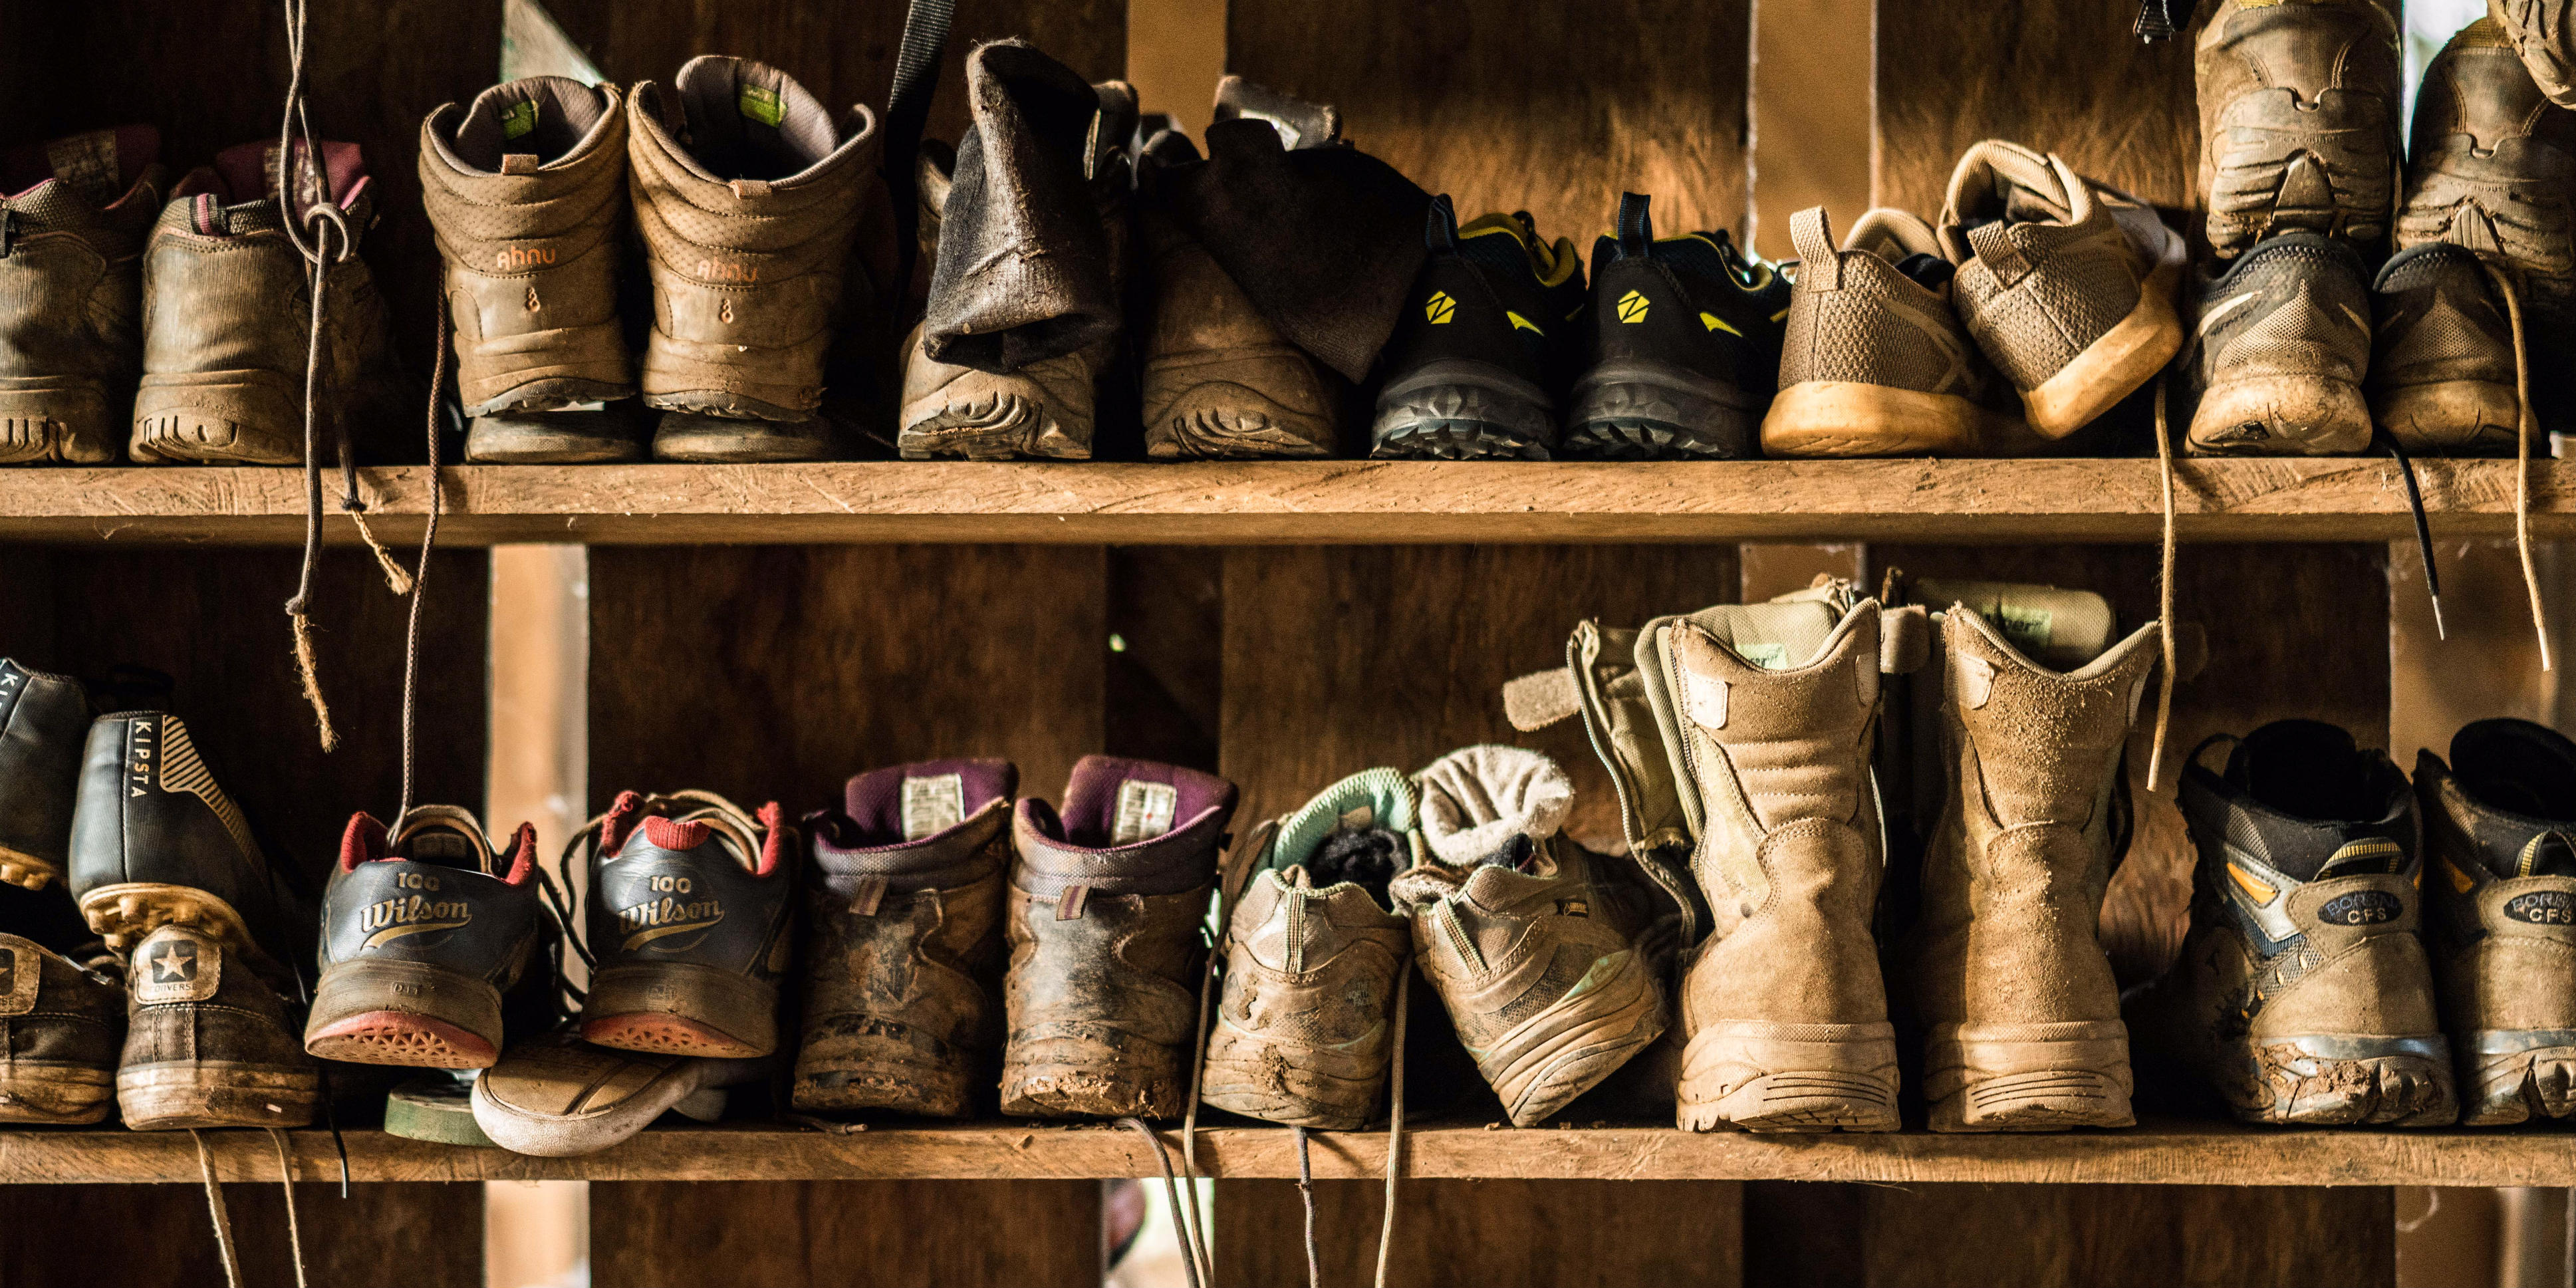 Travels looking to practise eco-friendly tourism should clean dirt off of their boots, to prevent cross contamination.